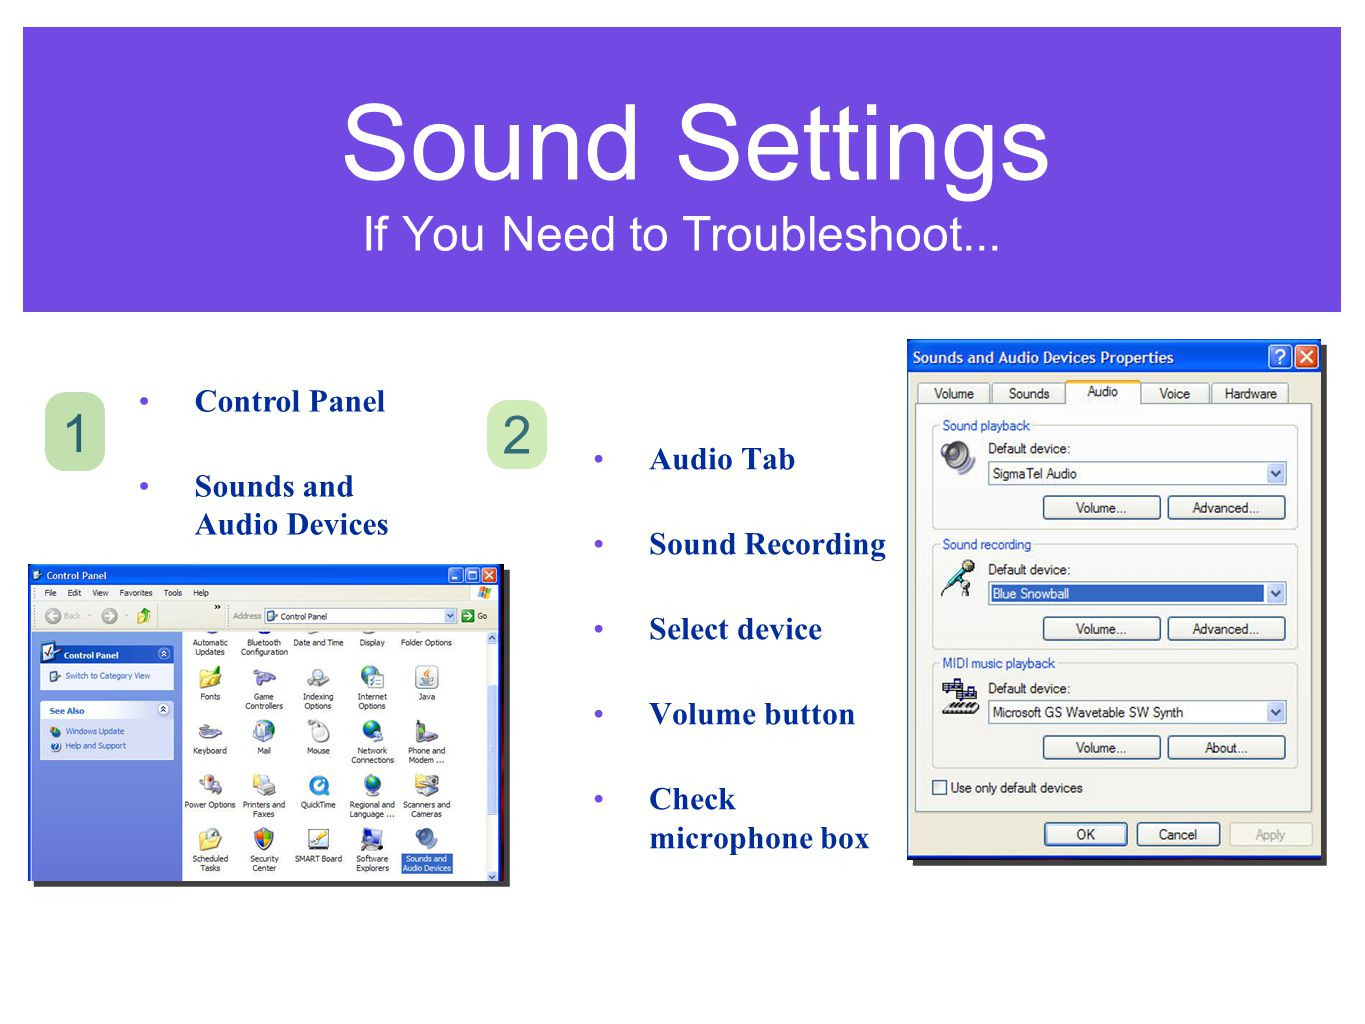 Sound Settings If You Need to Troubleshoot...